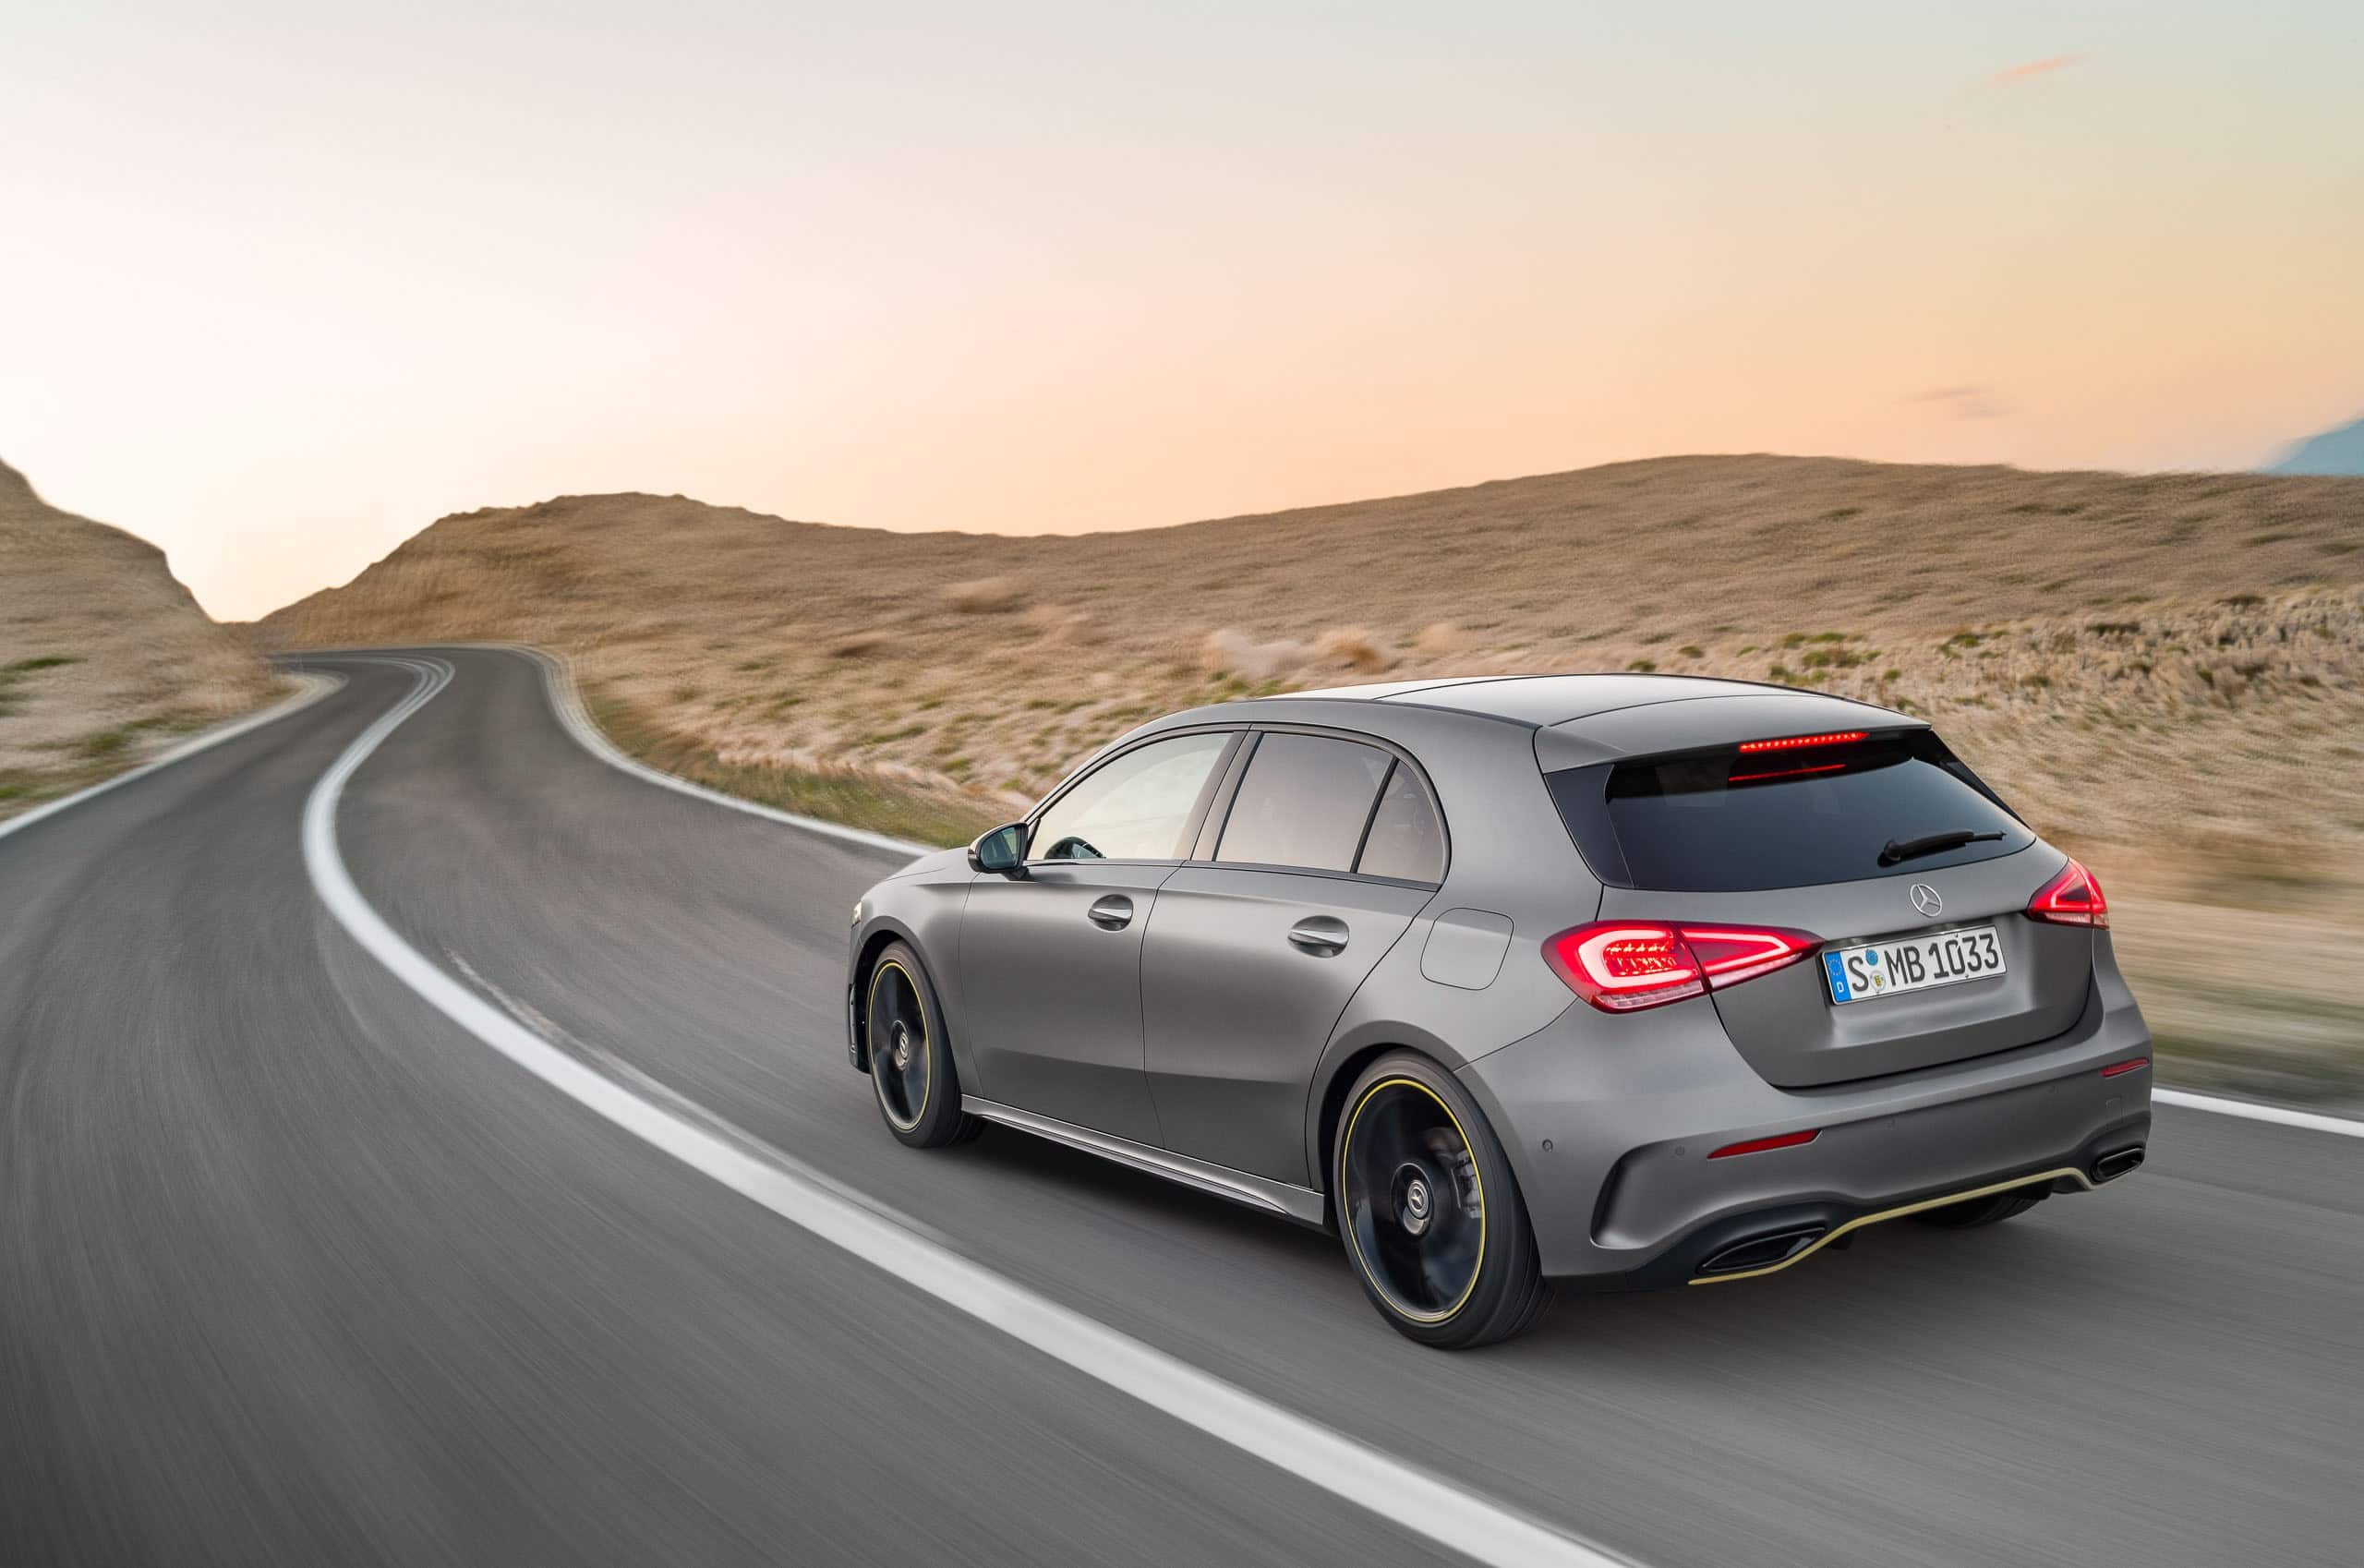 Mercedes A Klasse 2018 A Brand New Mercedes A Class Took Over The Roads Of